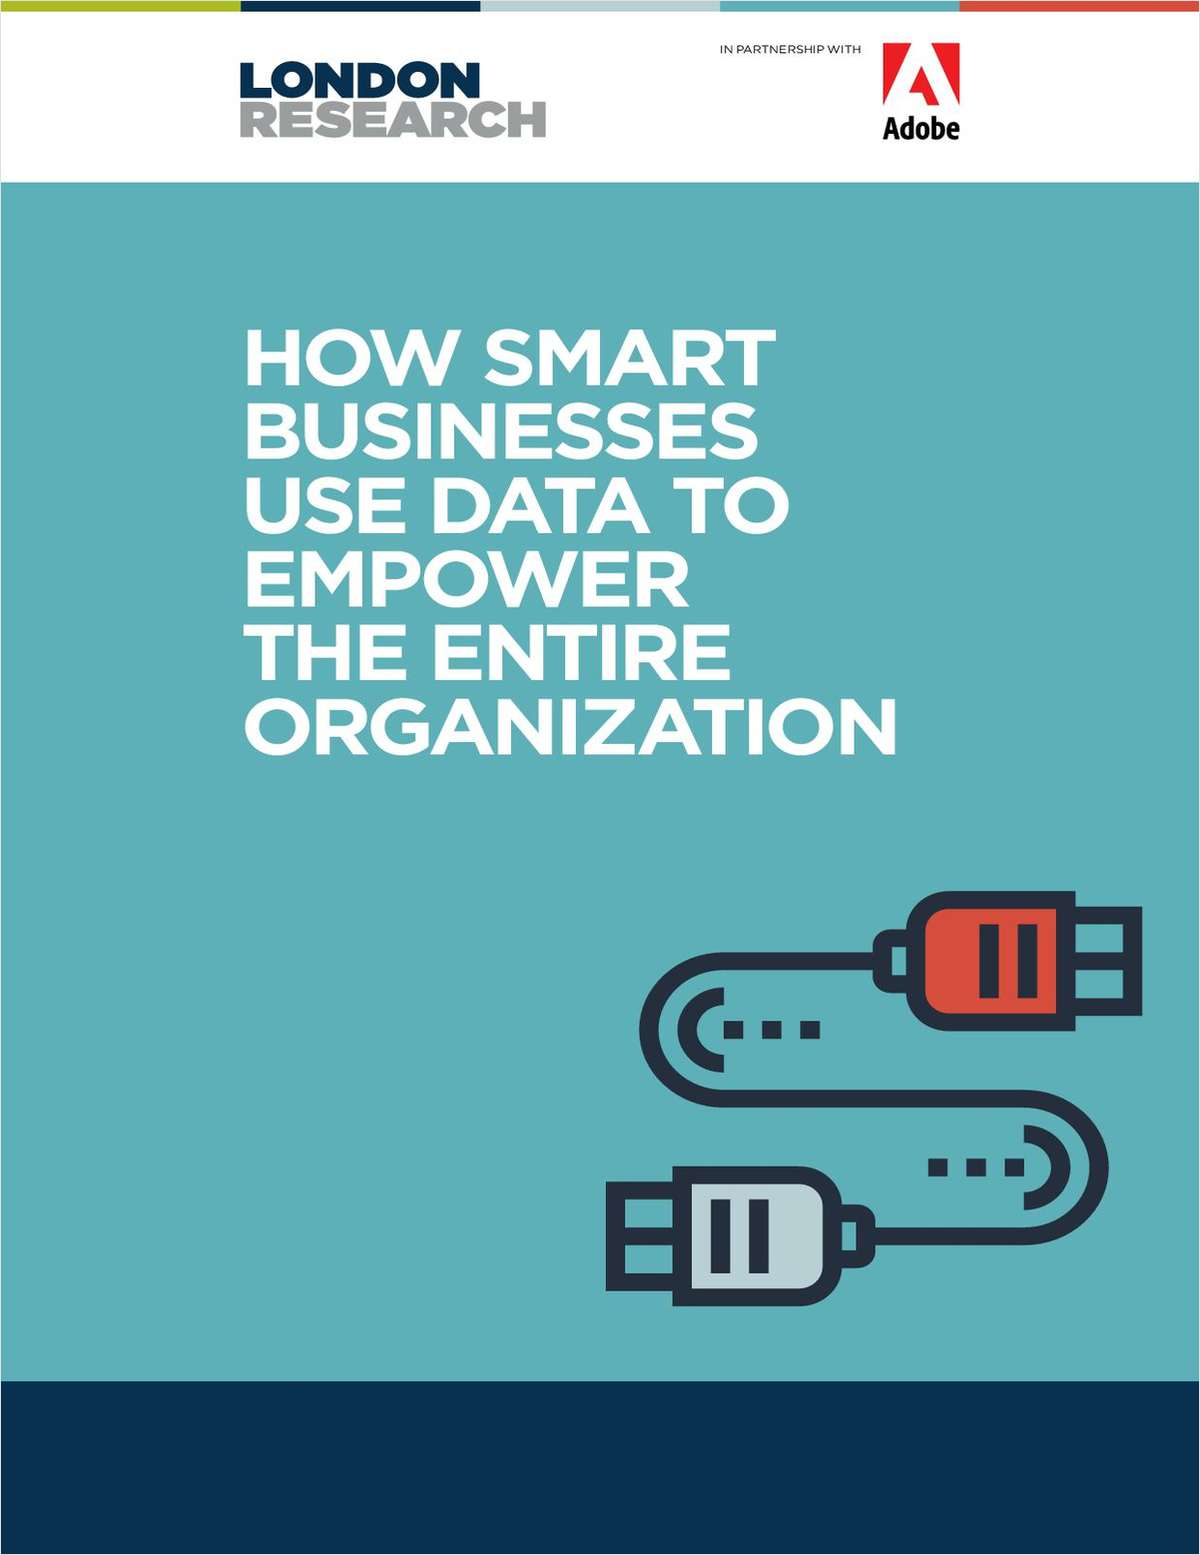 How Smart Businesses Use Data to Empower the Entire Organization